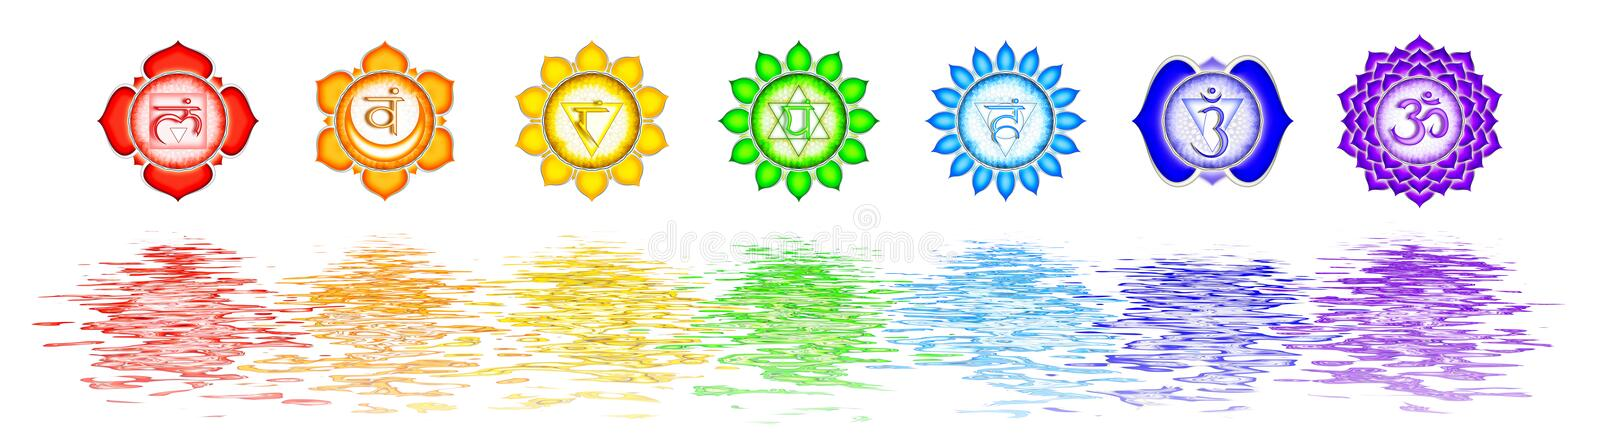 The seven chakras banner royalty free illustration